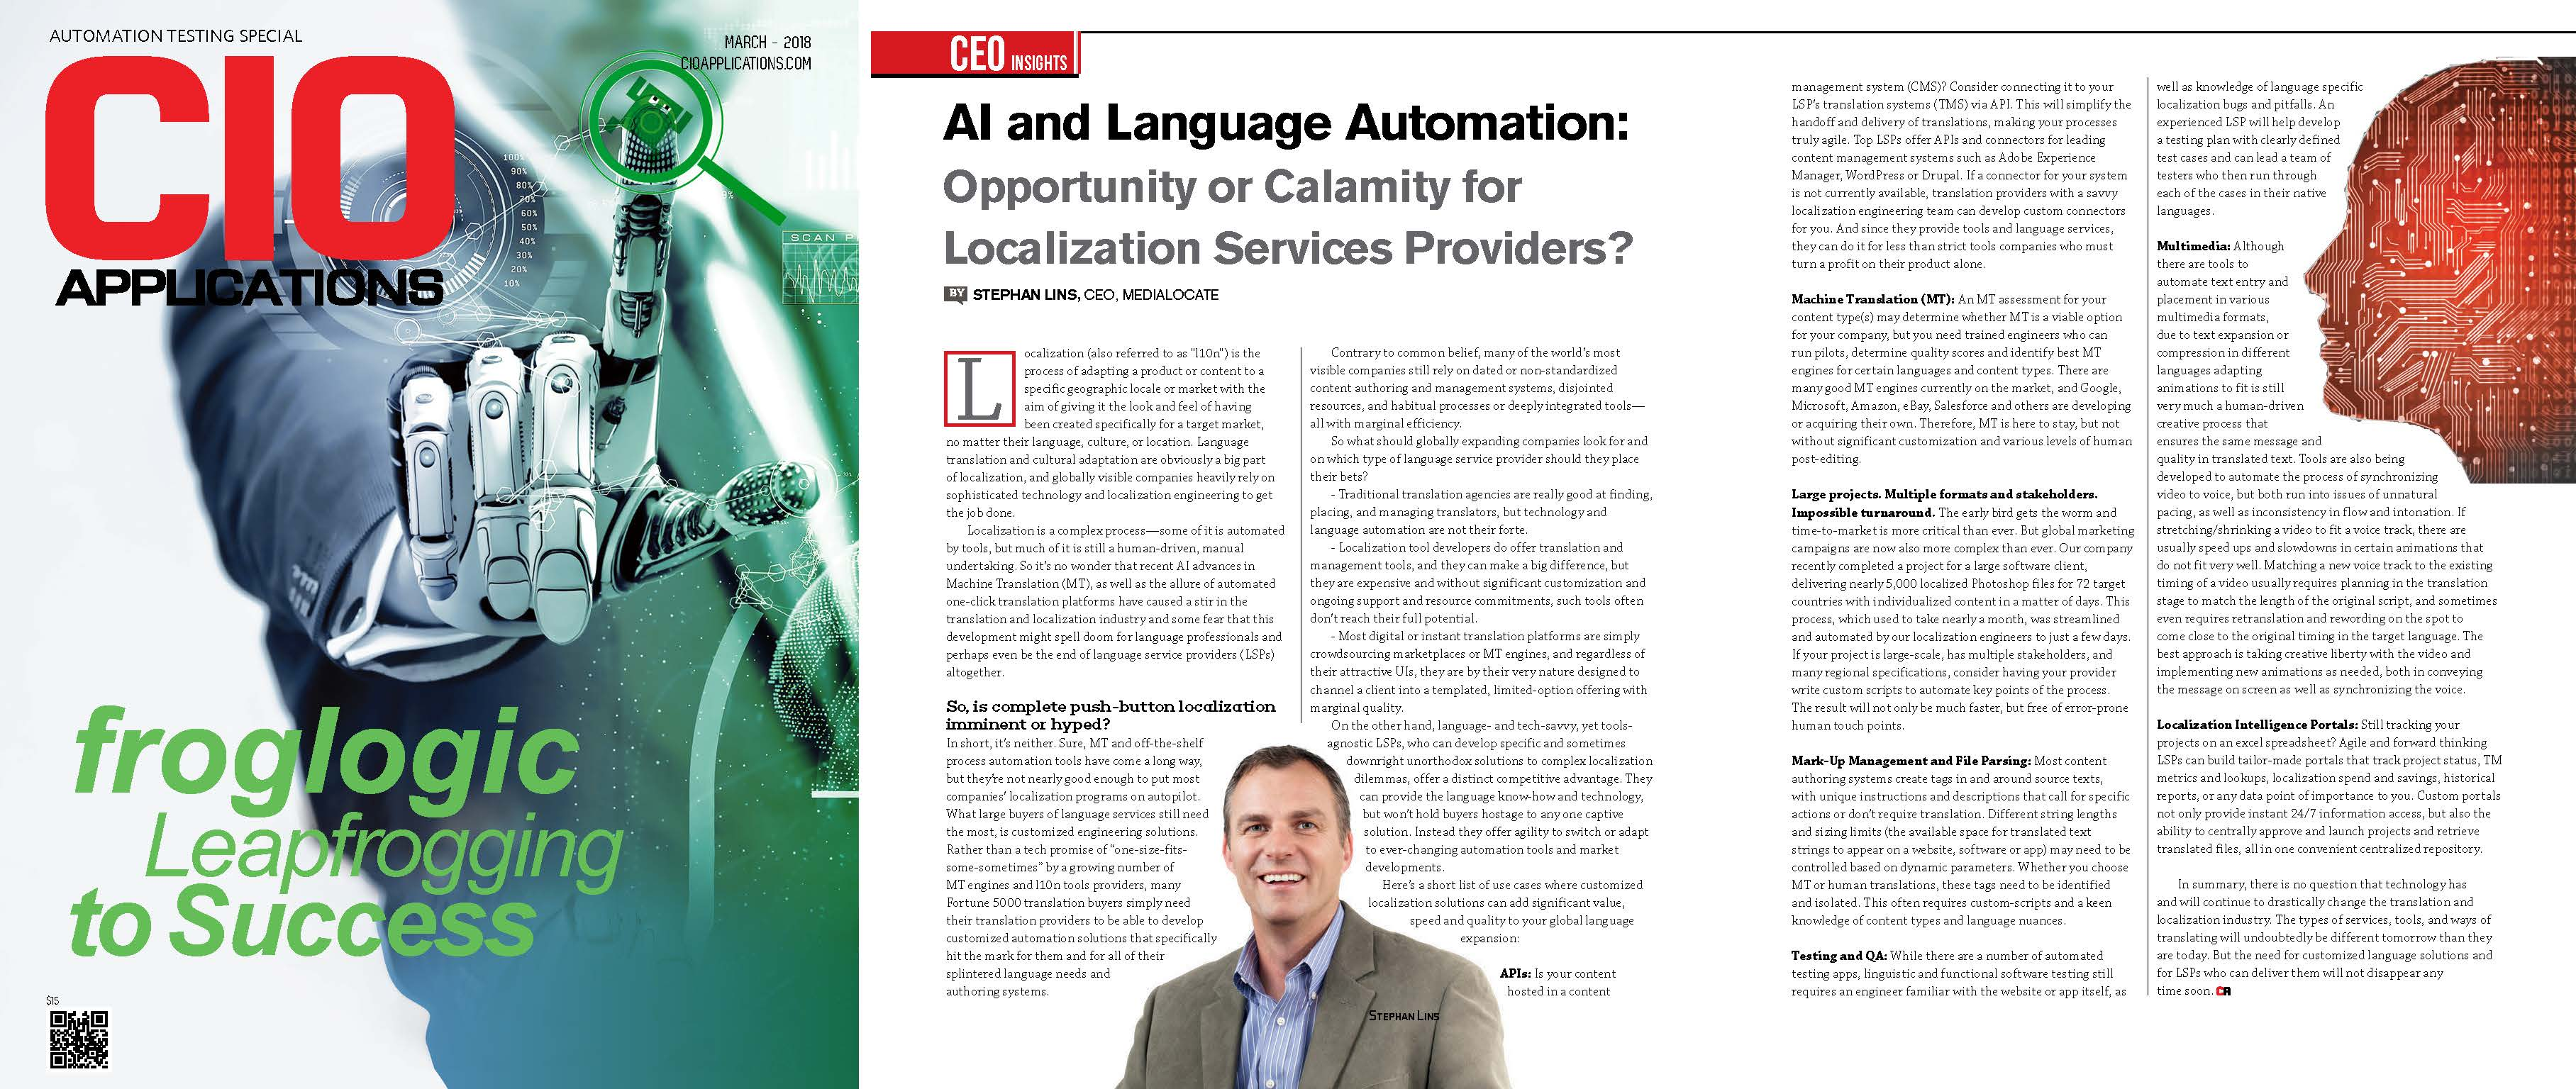 AI and Language Automation:  Opportunity or Calamity?